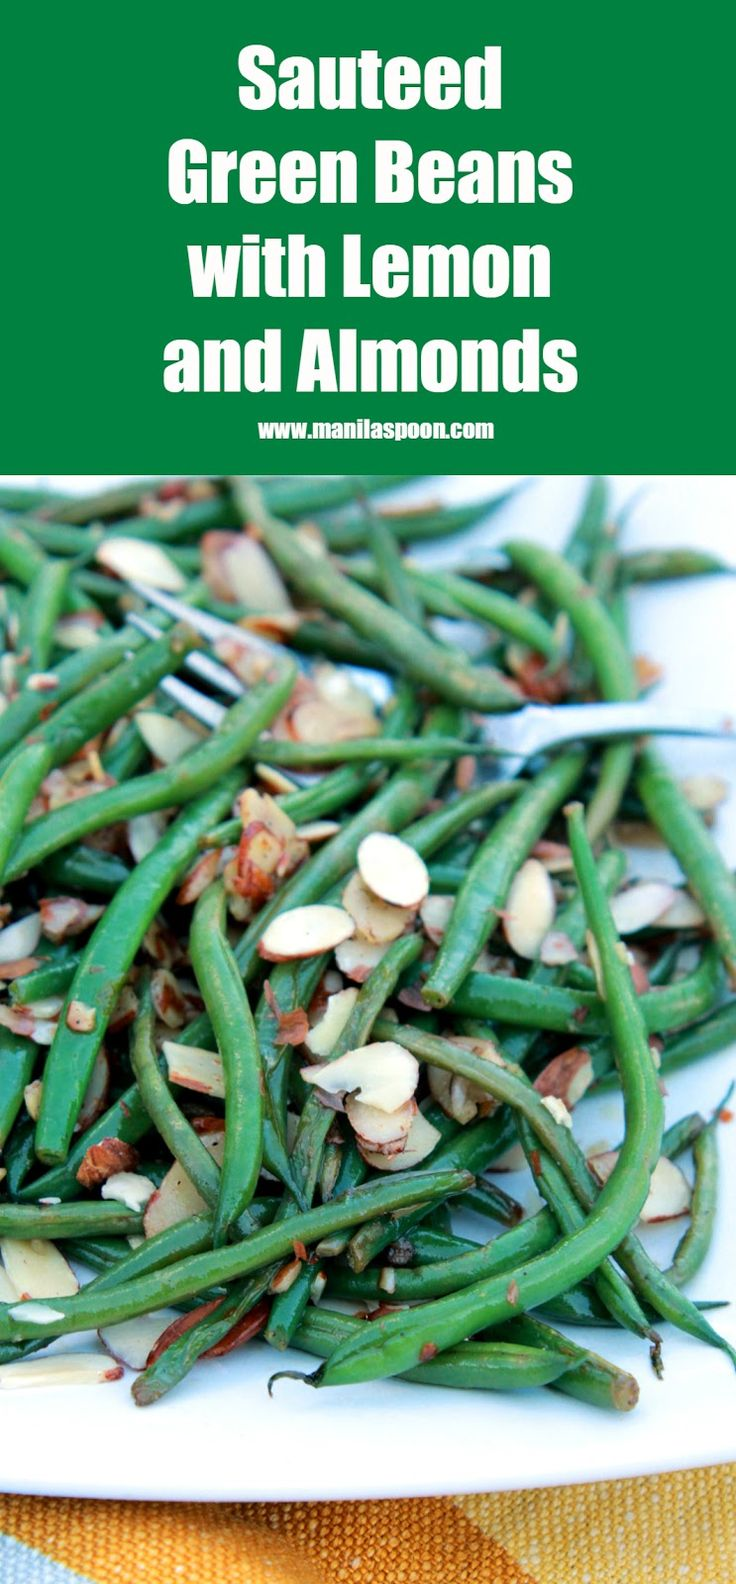 ... extra crunch from Almonds! Sautéed Green Beans with Lemon and Almonds